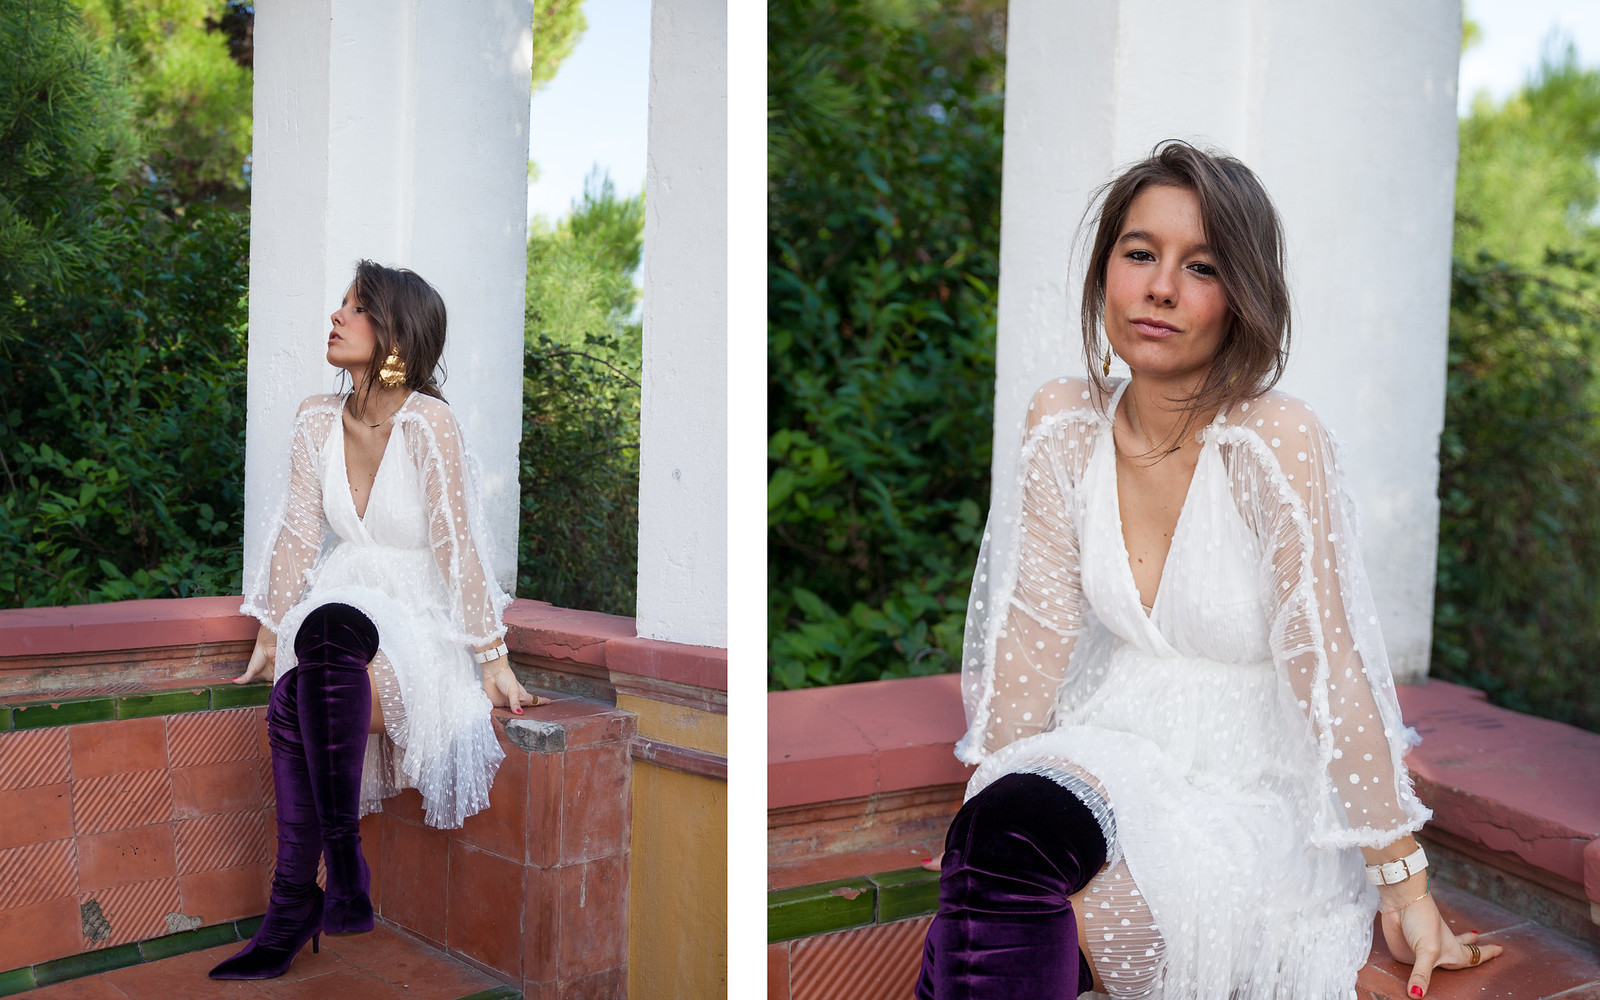 08_DANITY_BOHO_WHITE_DRESS_THEGUESTGIRL_AMBASSADOR_PARTY_DRESS_VESTIDOS_FIESTA_NAVIDADES_TENDENCIA